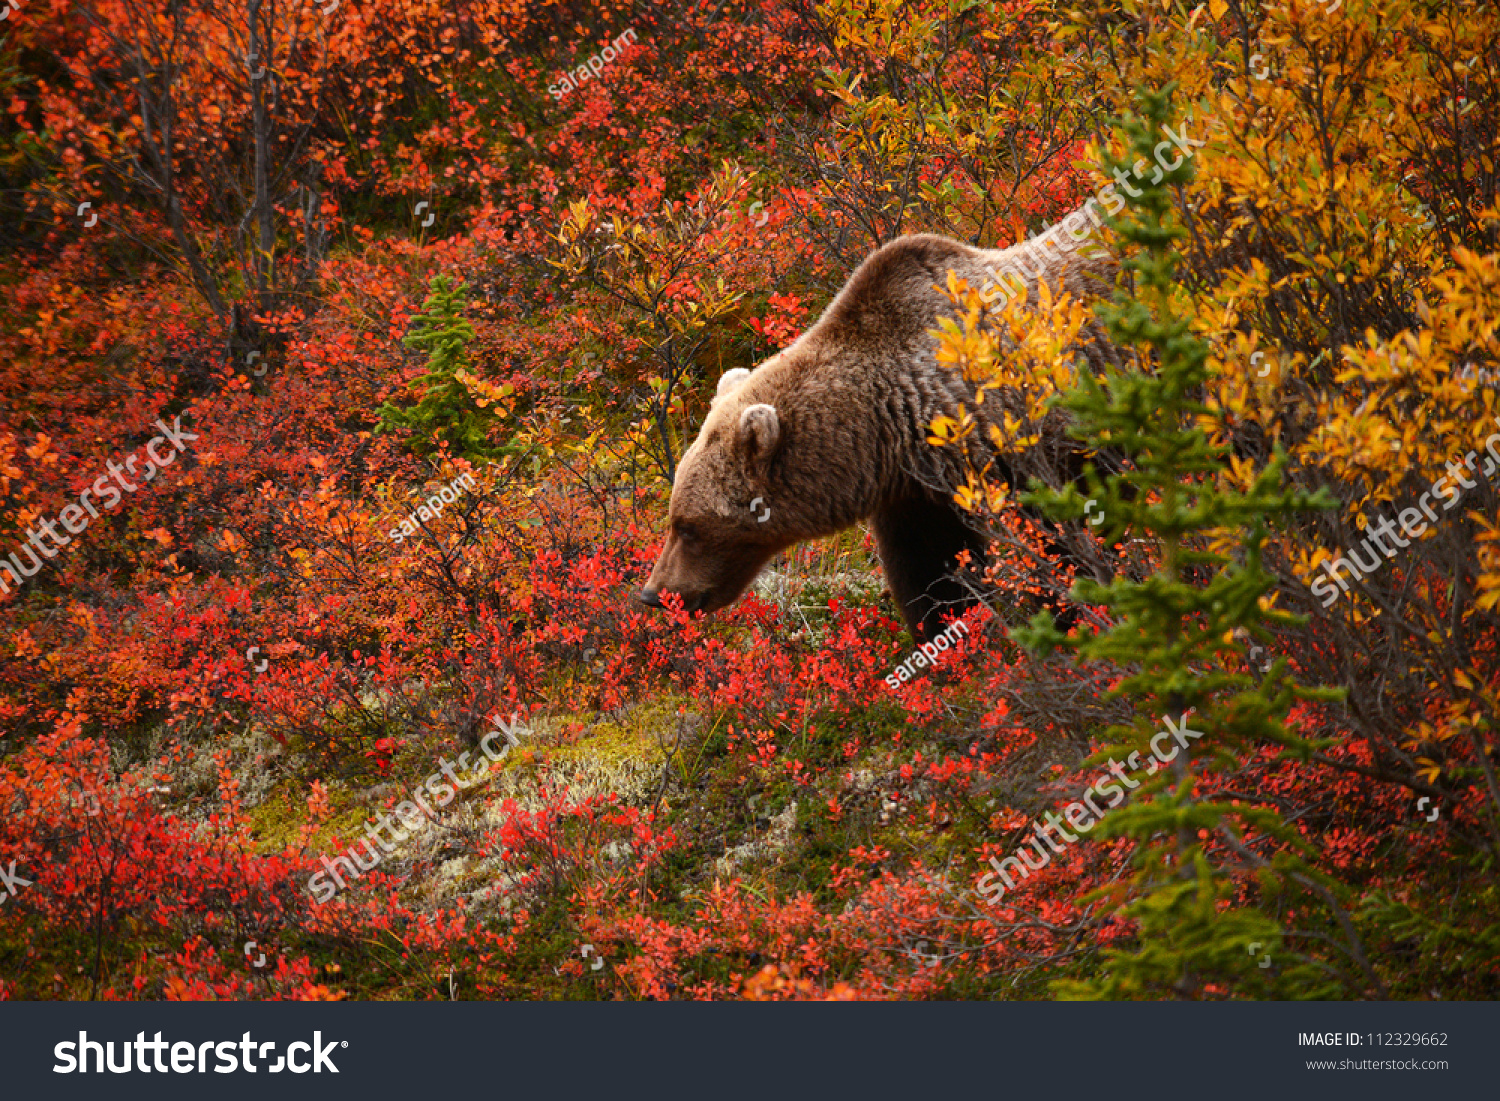 Before Looking For Alaska: Wild Grizzly Bear Looking For Food In Autumn At Alaska